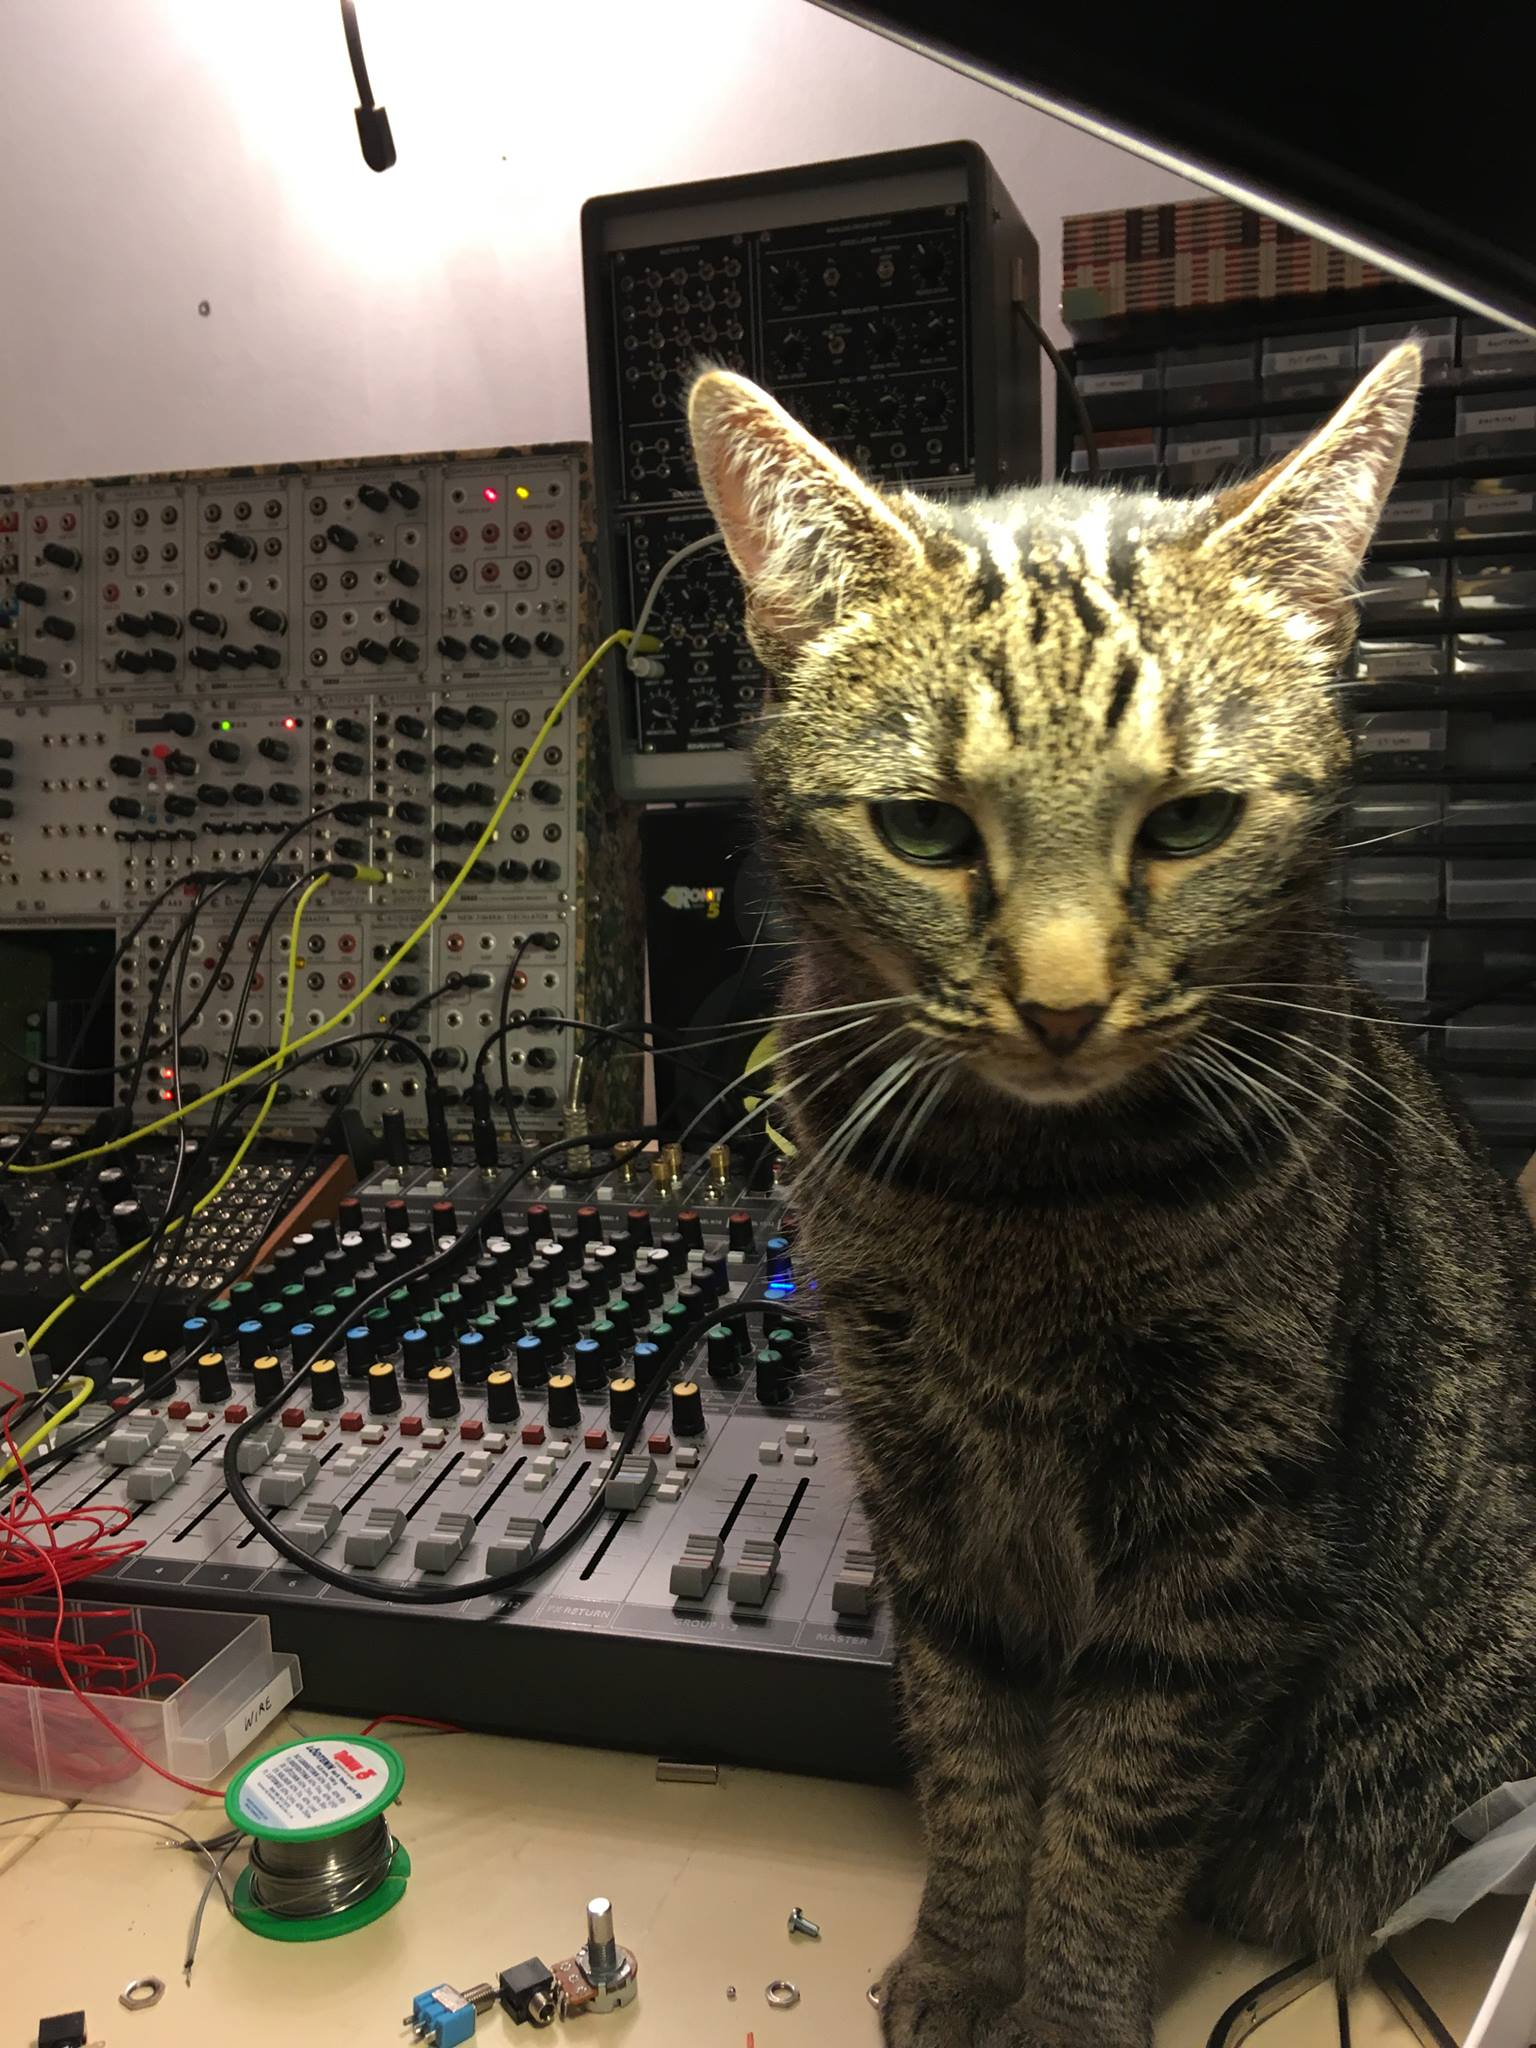 CatSynth Pic: Cat and Mutable Instruments